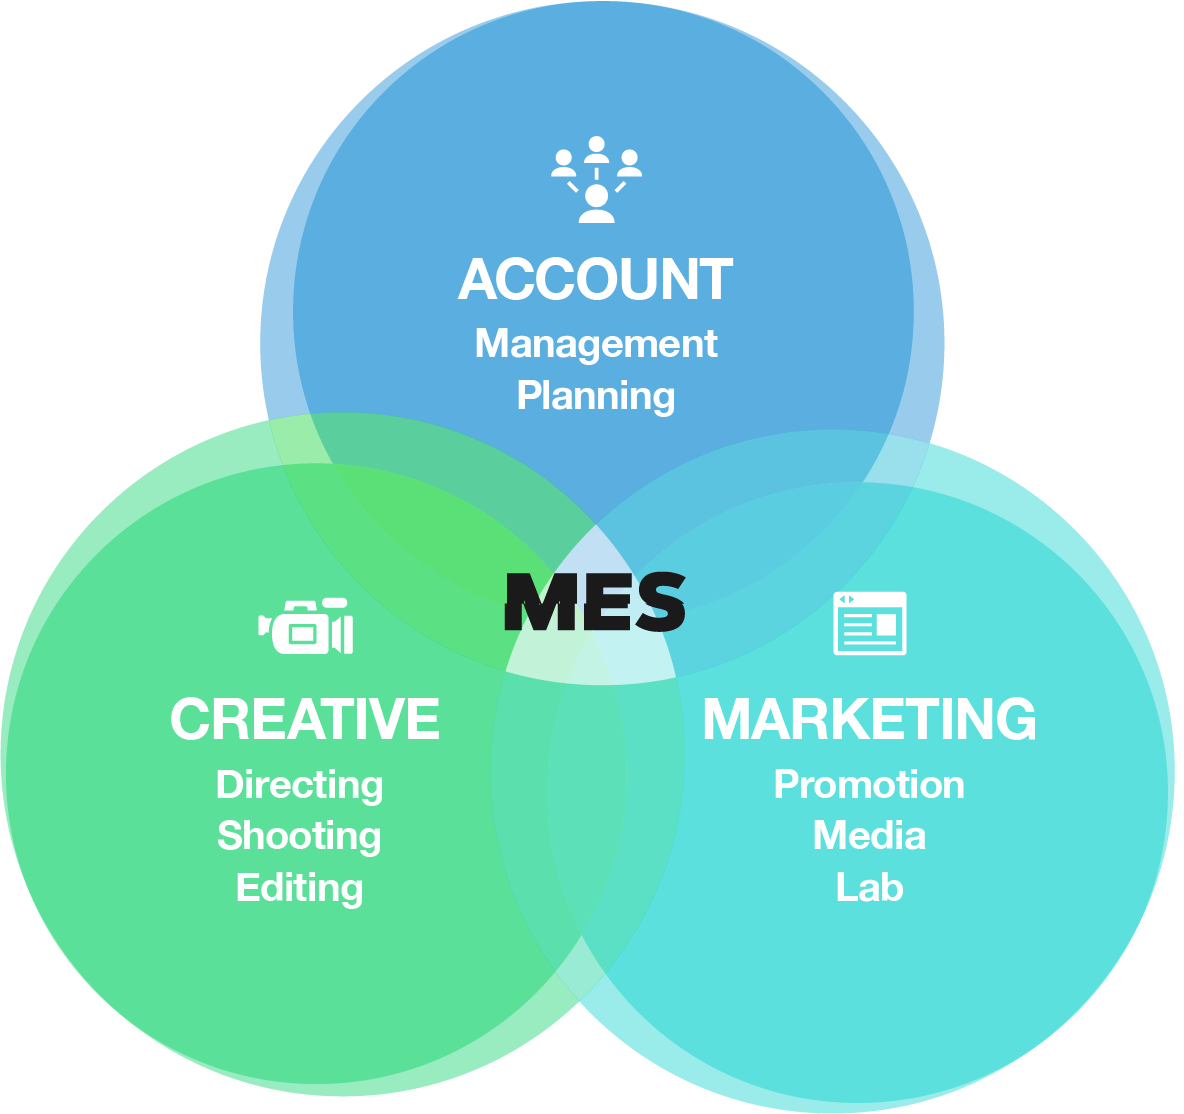 ACCOUNT:Management,Planning/CREATIVE:Directing,Shooting,Editing/MARKETING:Promotion,Media,Lab=MES